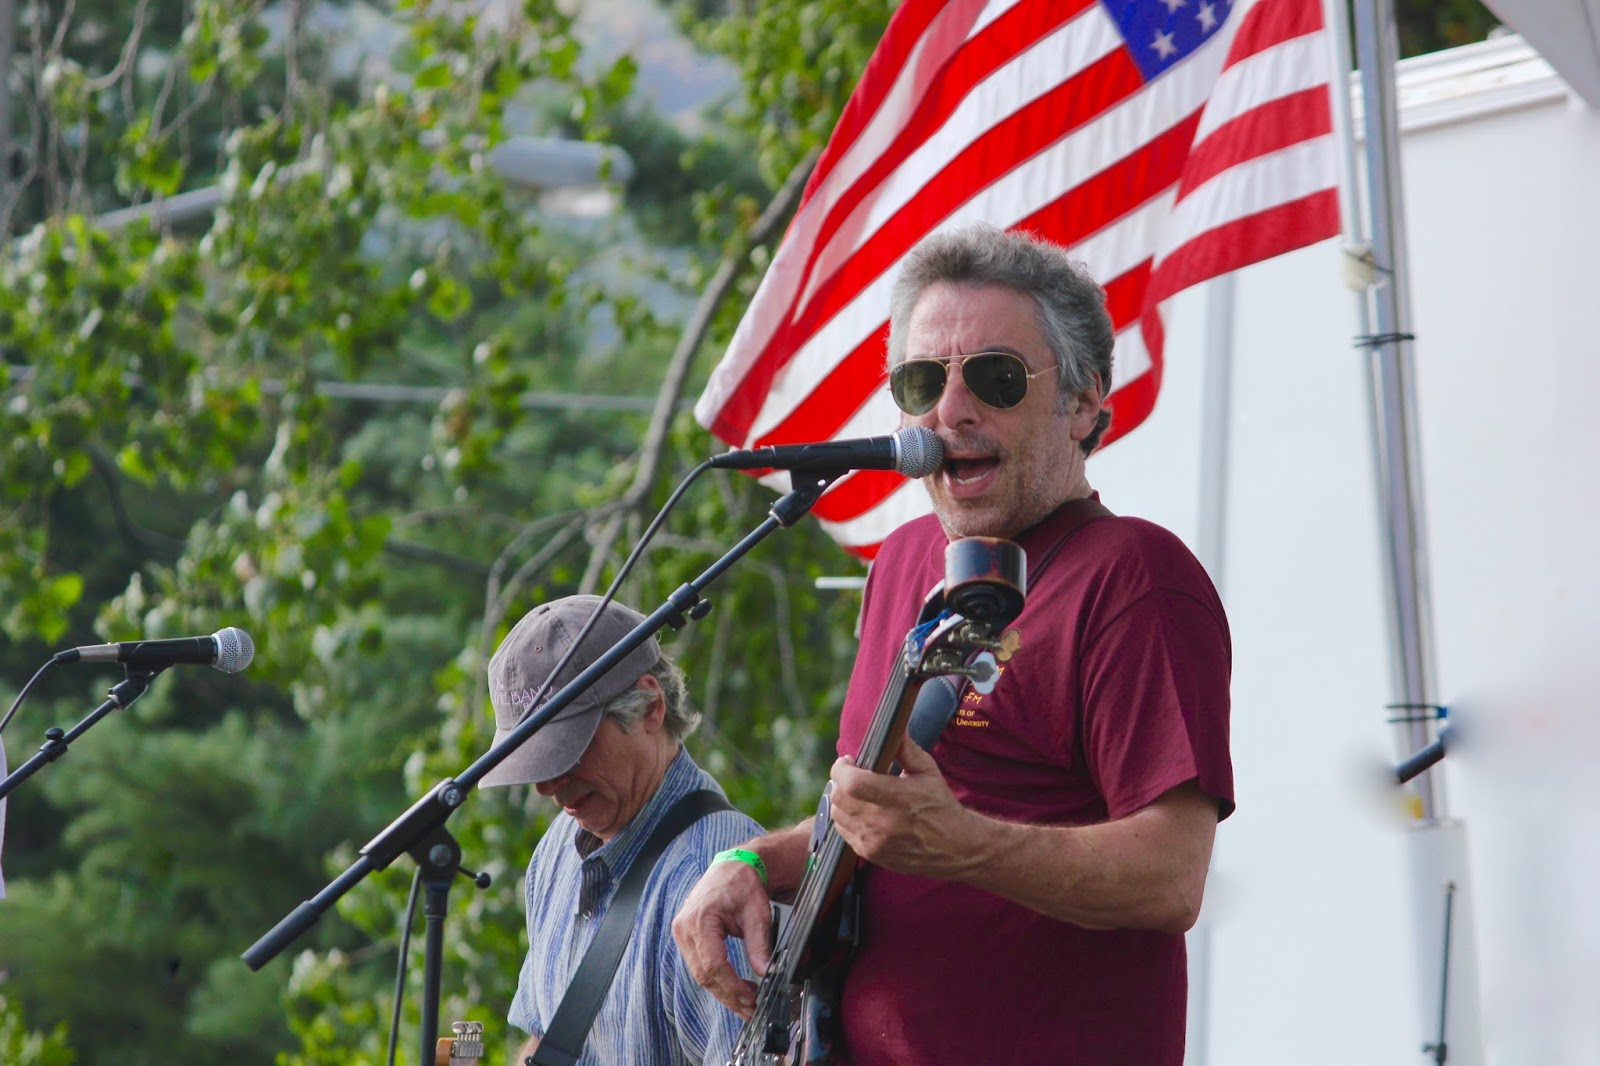 - Gary Solomon of The THE BAND at the American Roots Music Festival (Sept. 7, 2015) Photo: Thunderbird Ranch Ramble